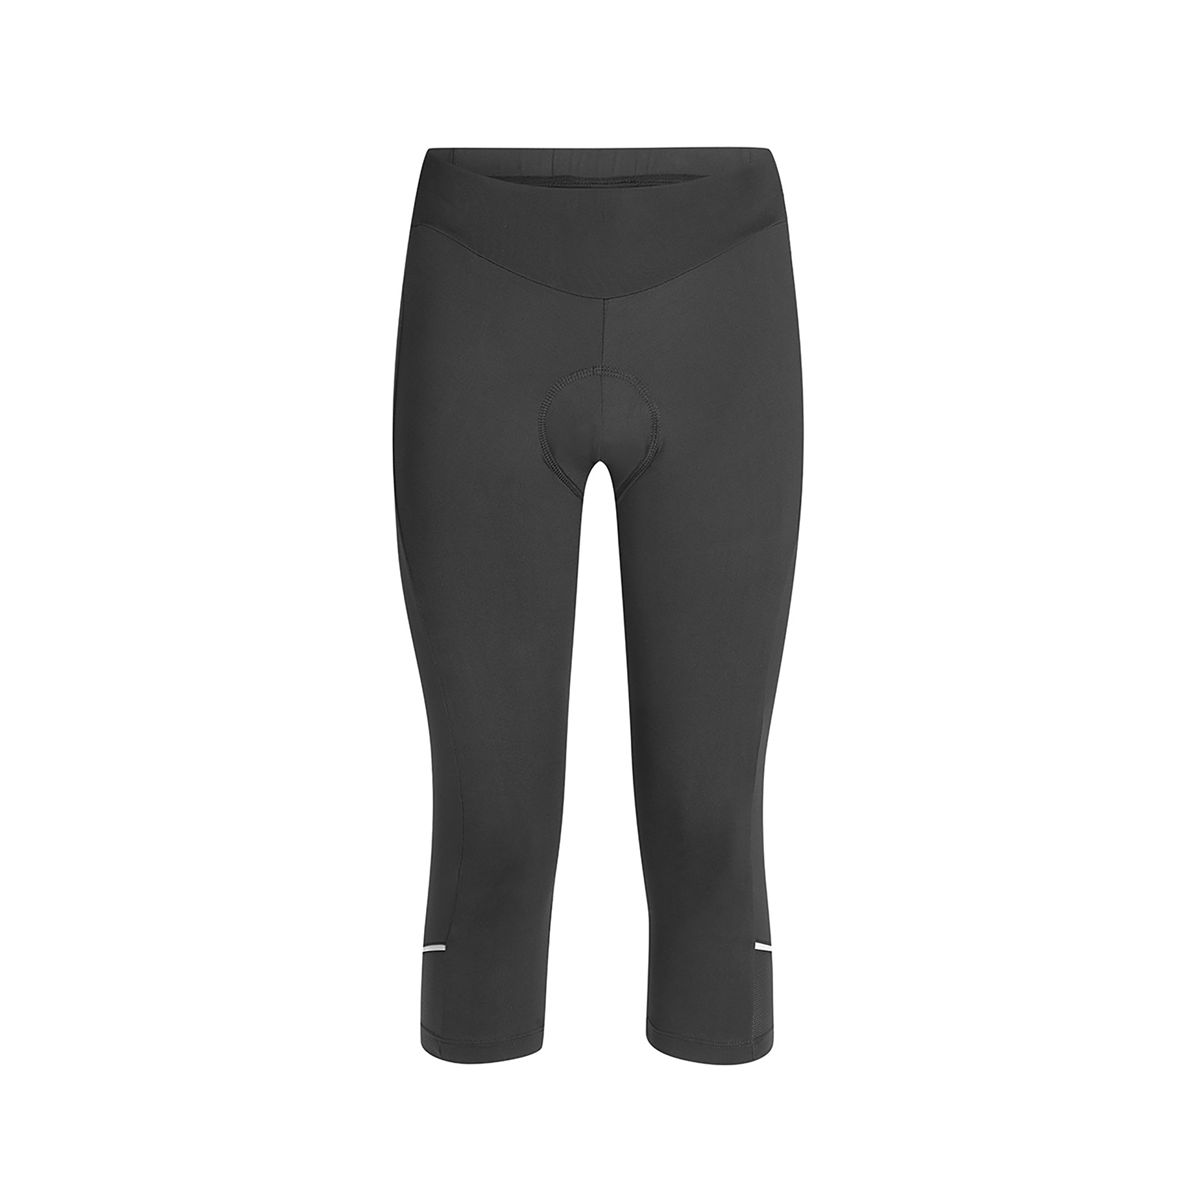 BELLA ¾-length cycling tights for women